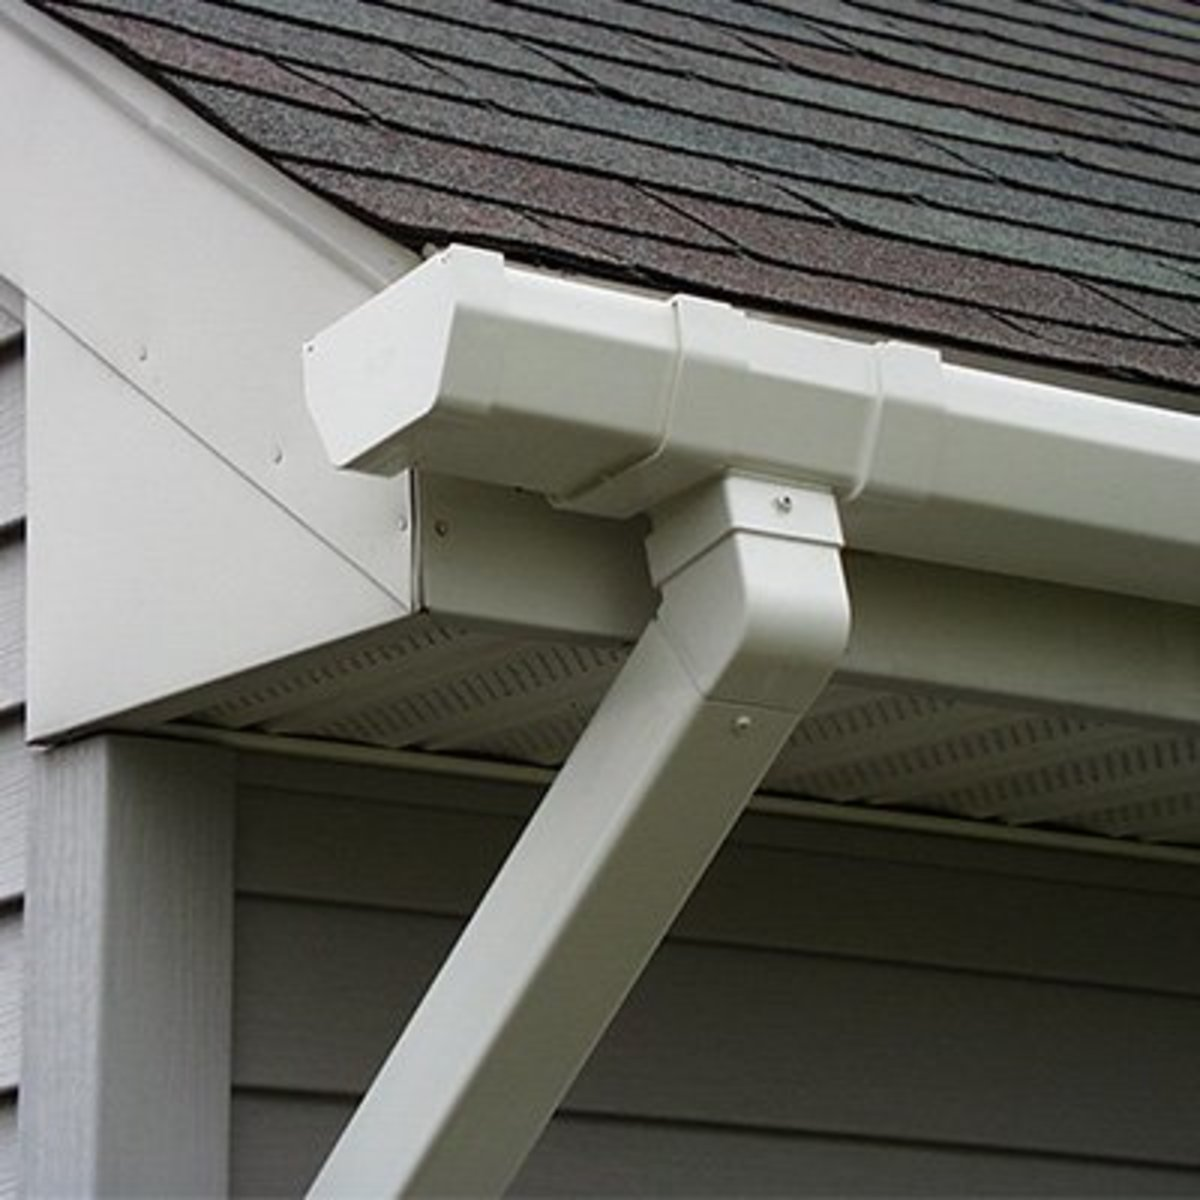 Tips For Spray Painting Gutters And Downspouts Dengarden